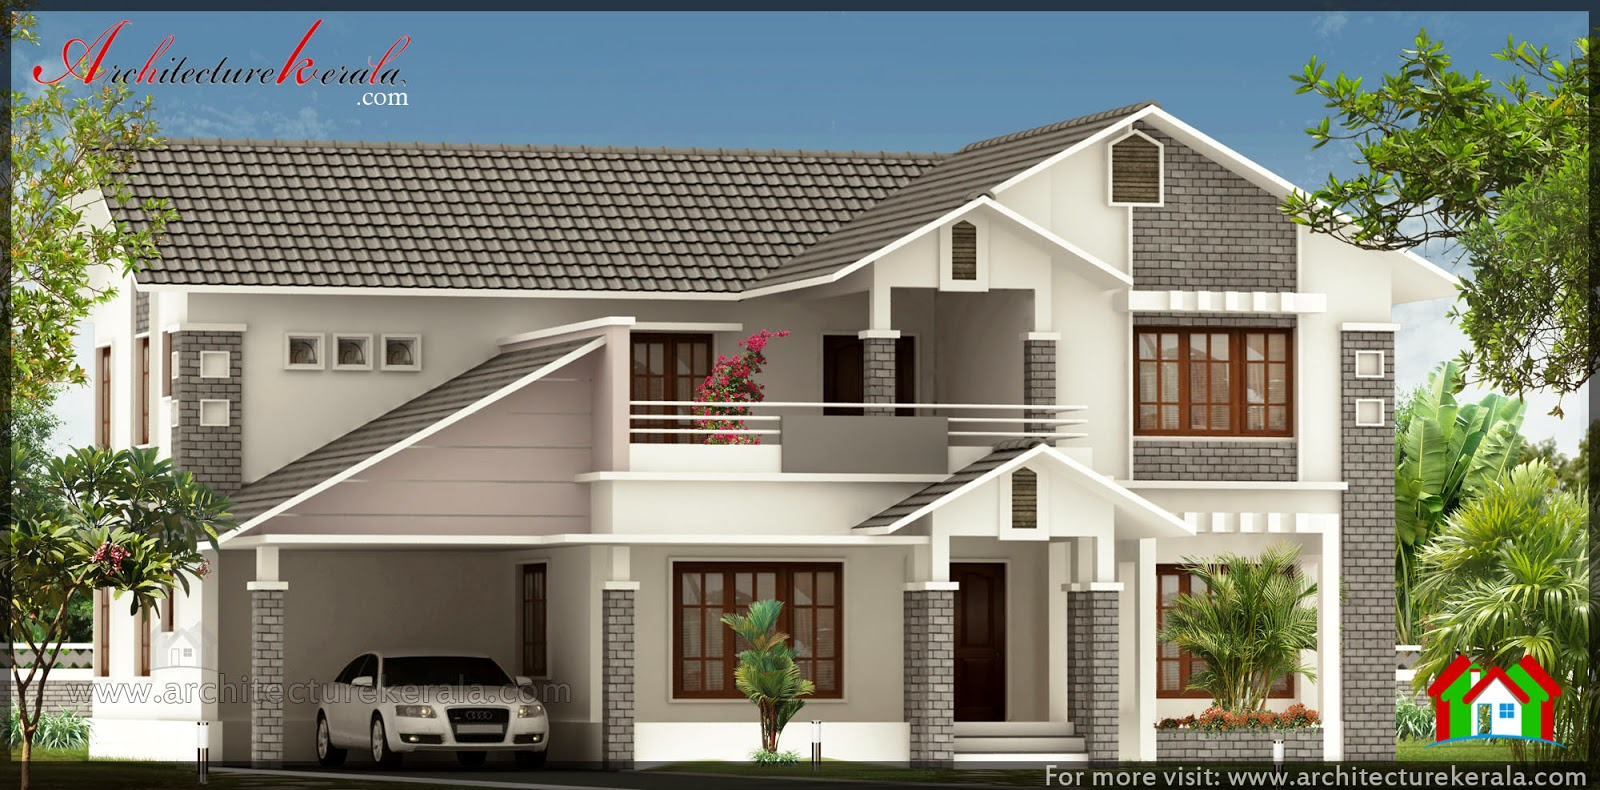 Full Slope Roof House Design Architecture Kerala